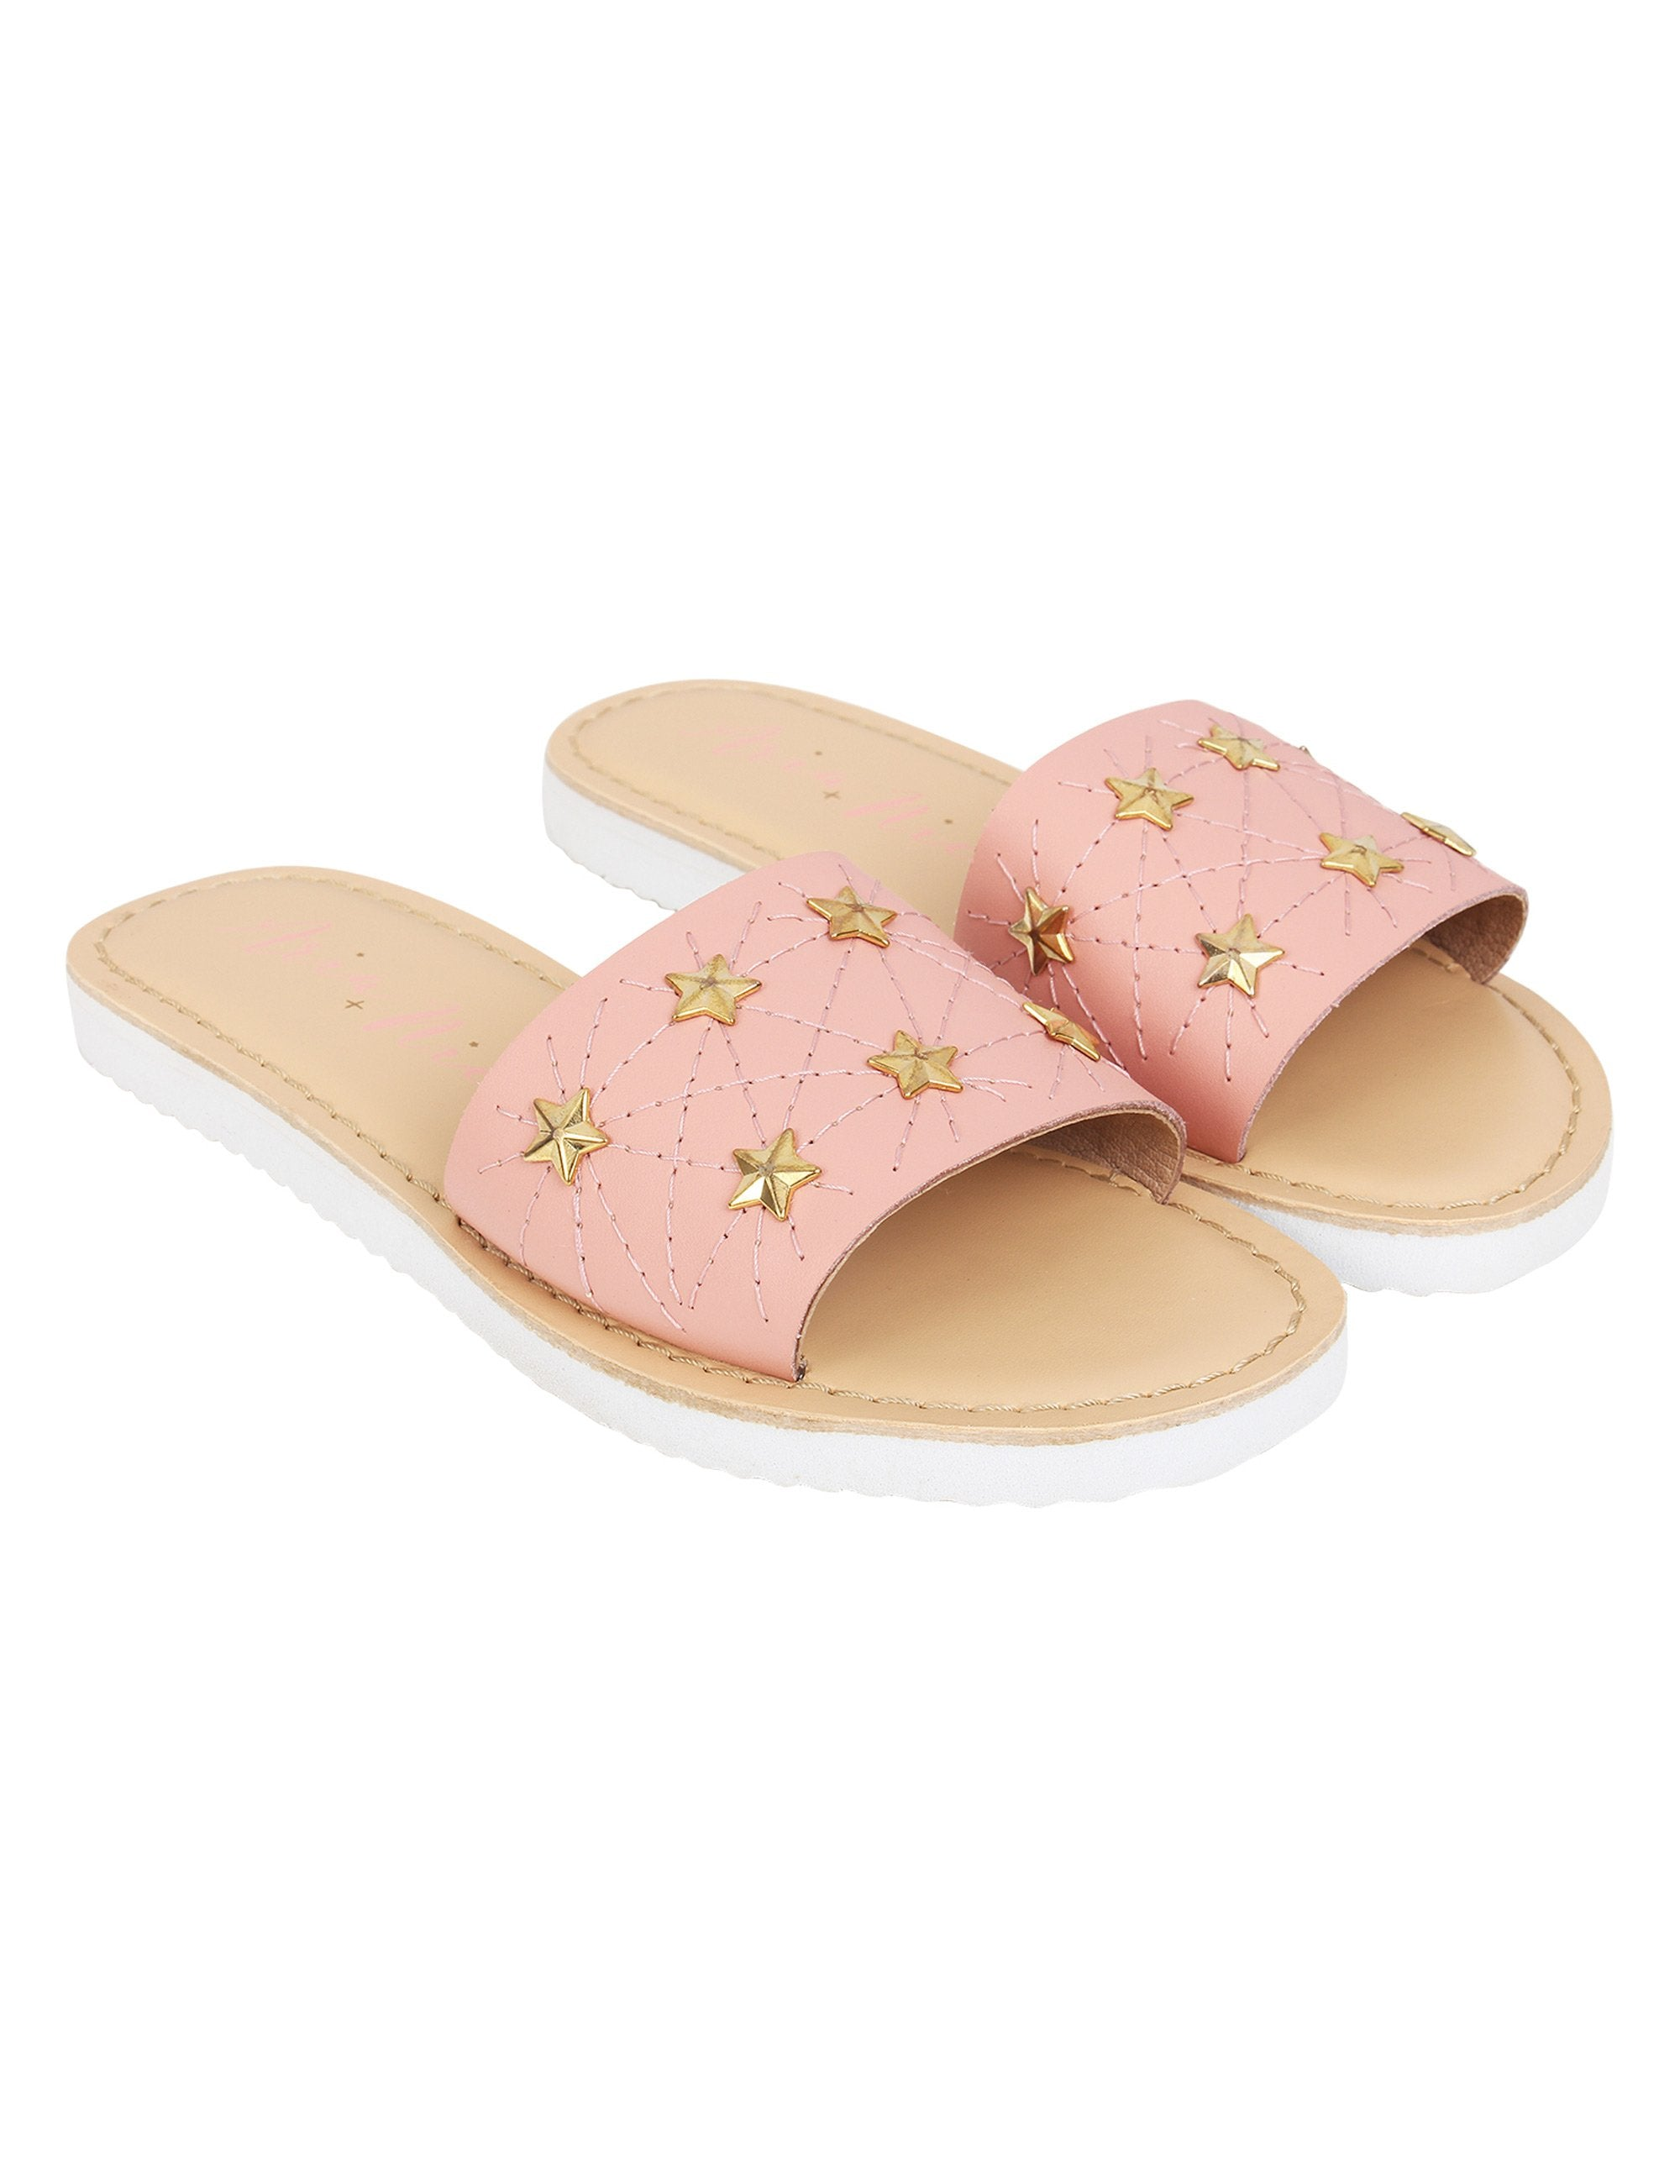 Star Flats for Girls in Pink Colour